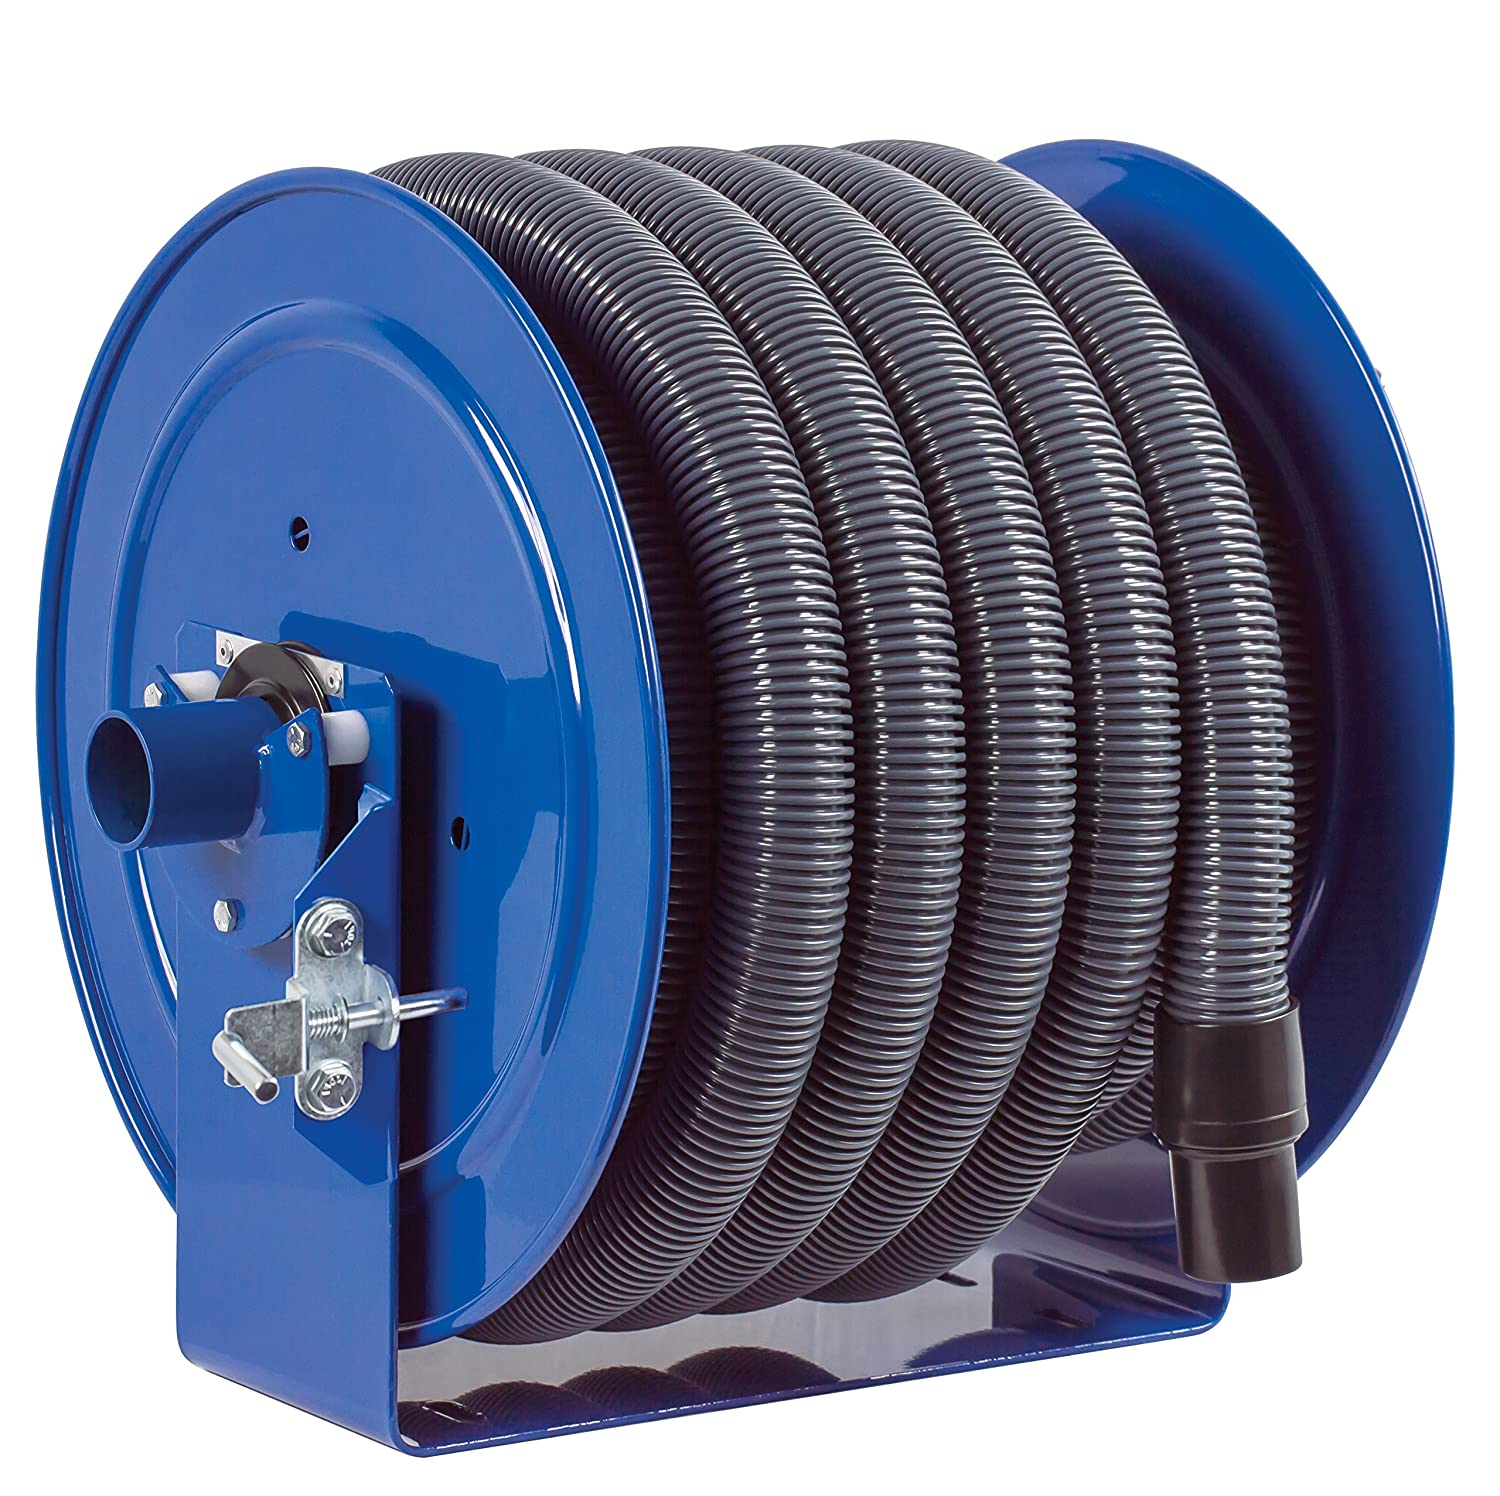 "Coxreels V-117H-850-BXXX-XXP V-117-850-Bxxx-XP Vacuum Only Direct Crank Rewind Hose Reel, 1-1/2"" Cuff, 2"" x 50' Hose, with Pin Lock, Blue"